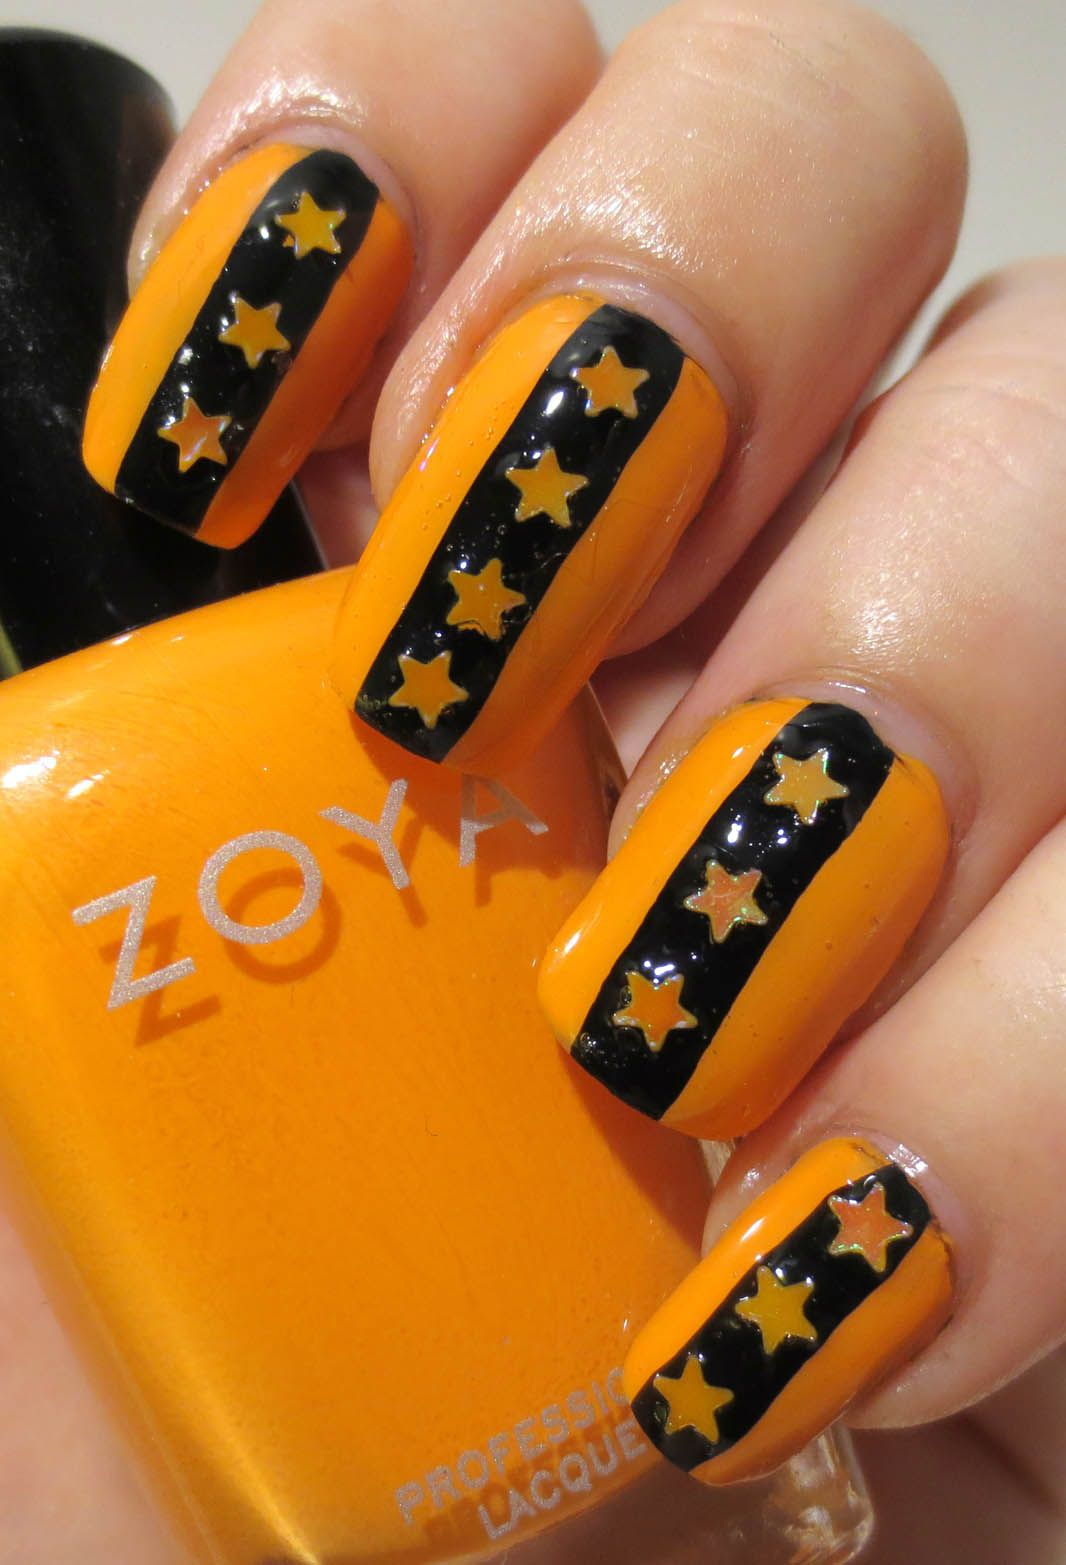 Galactic Lacquer: 8 Spooky Nights - Only Black & Orange